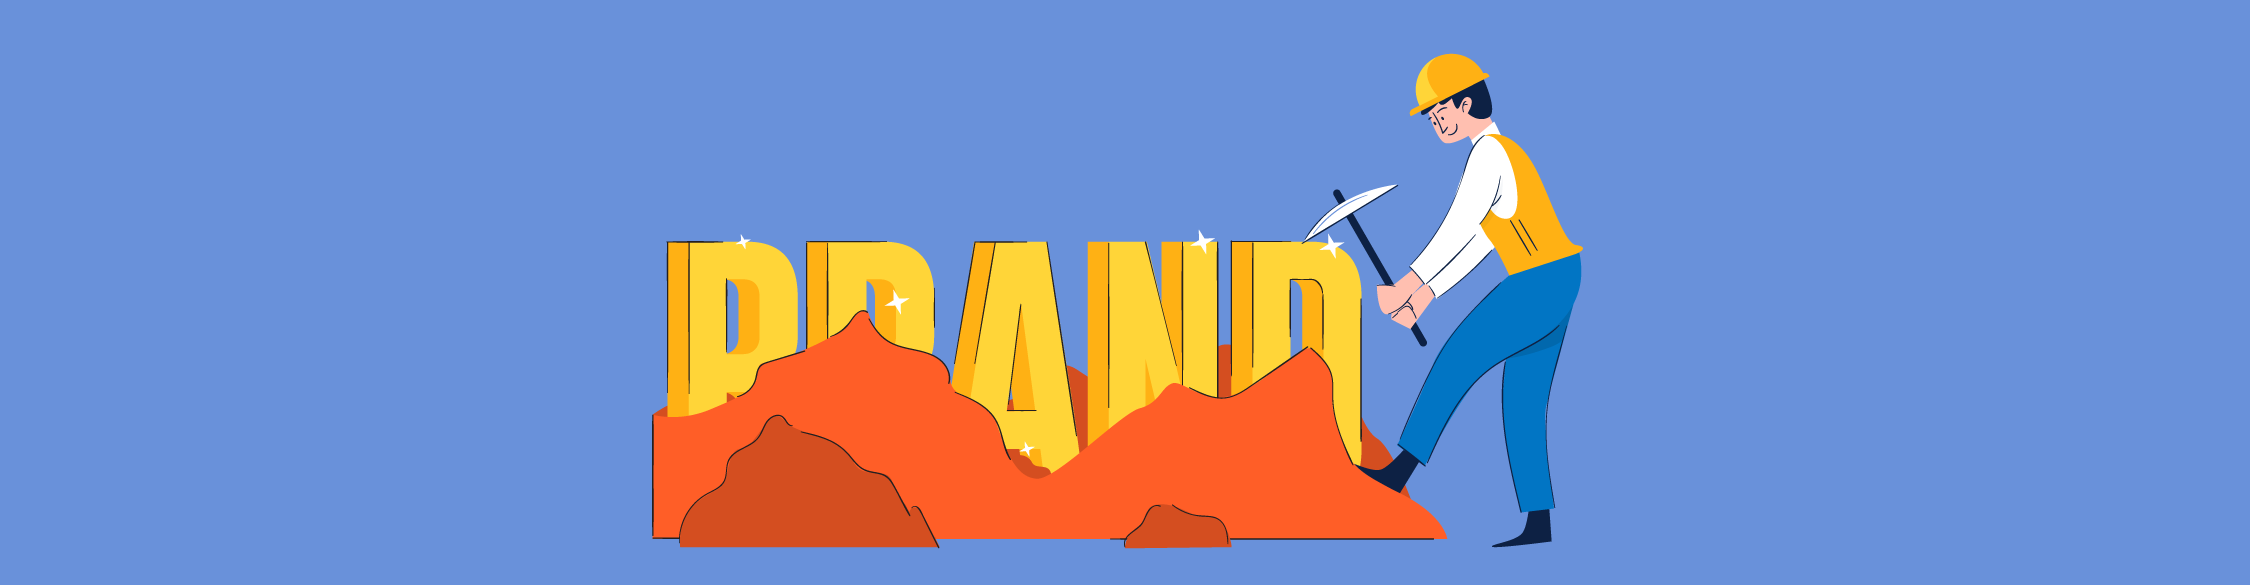 An illustration of a man hitting a brand with a pickaxe.